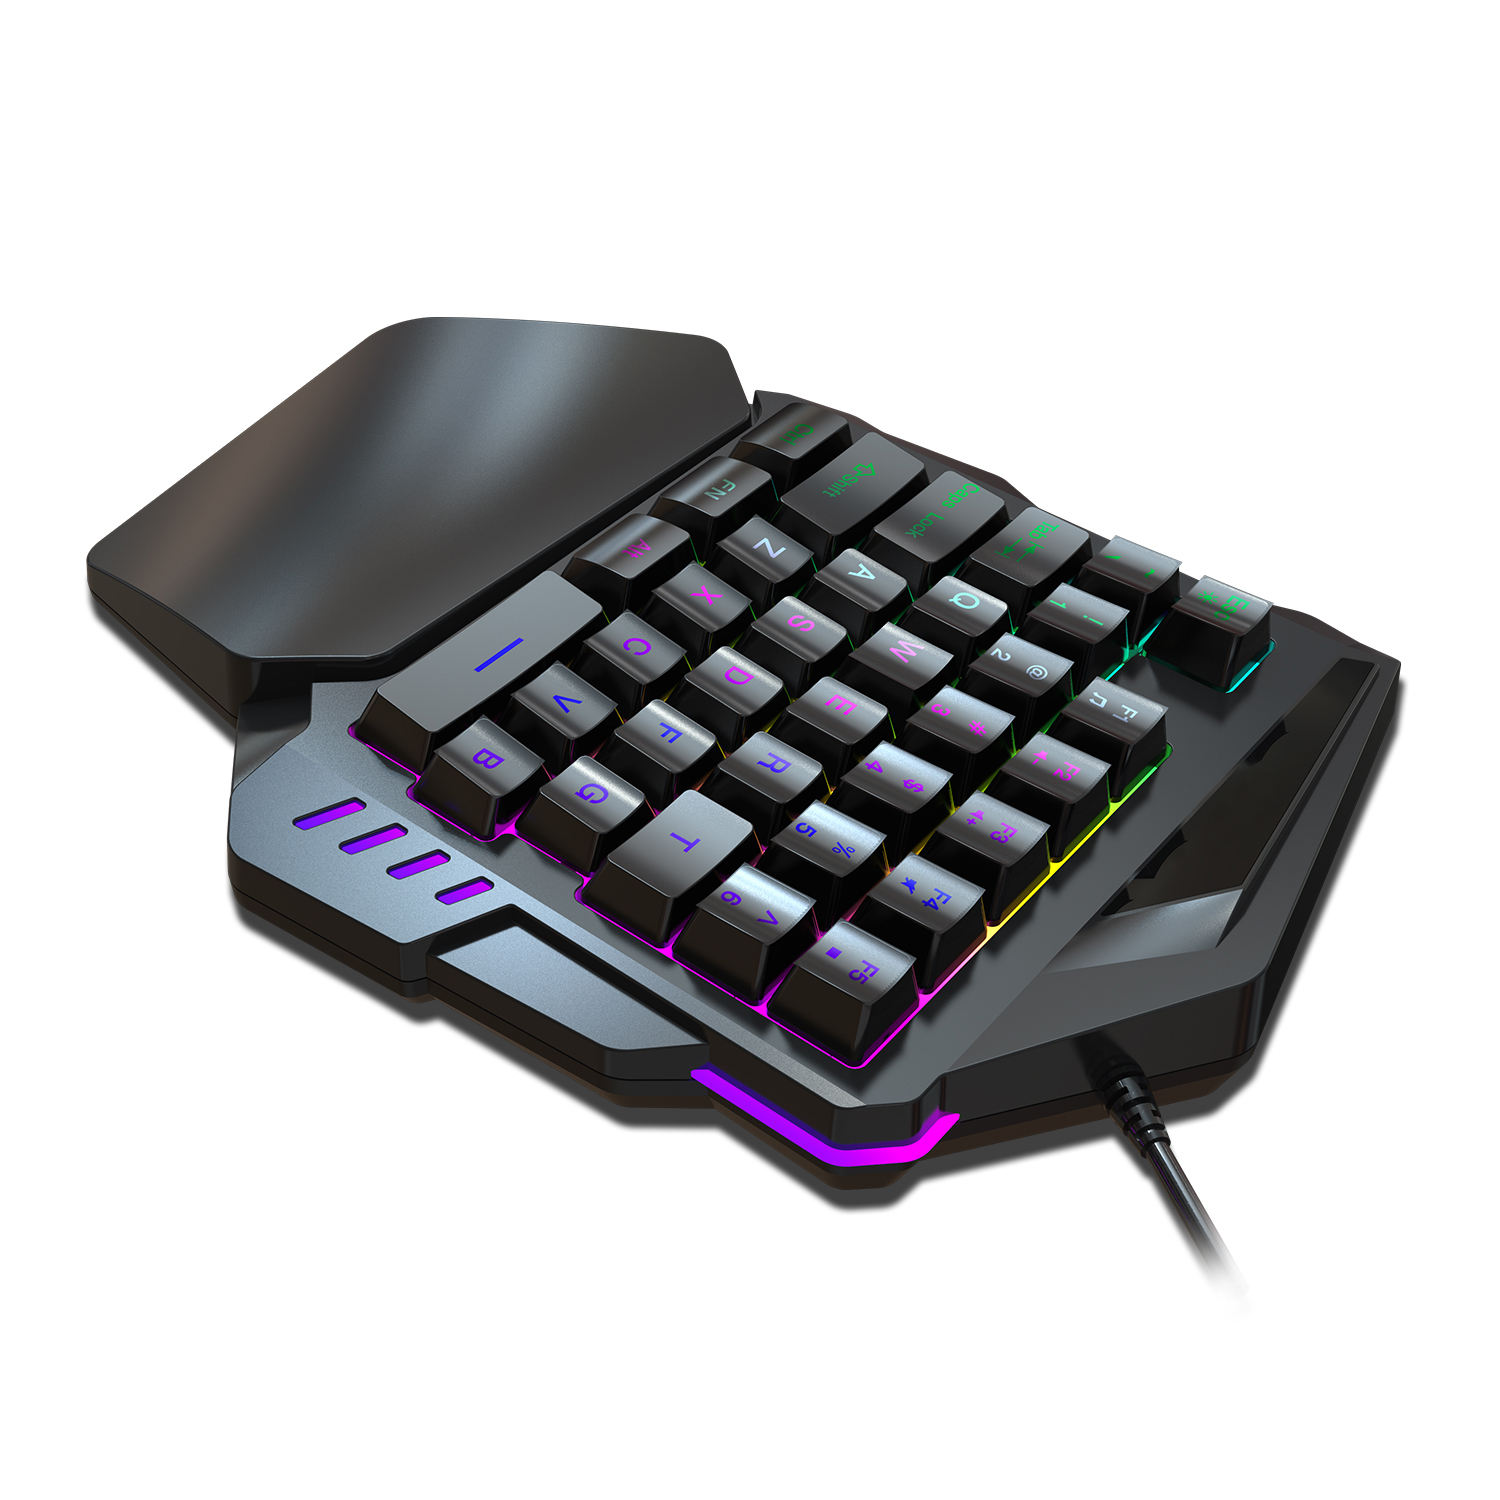 Amazon Hot Selling Single Mini Mechanical Gaming Led Keyboard and Mouse Combo Gamer Kit K99 PU-BG Game Keypad and Mouse